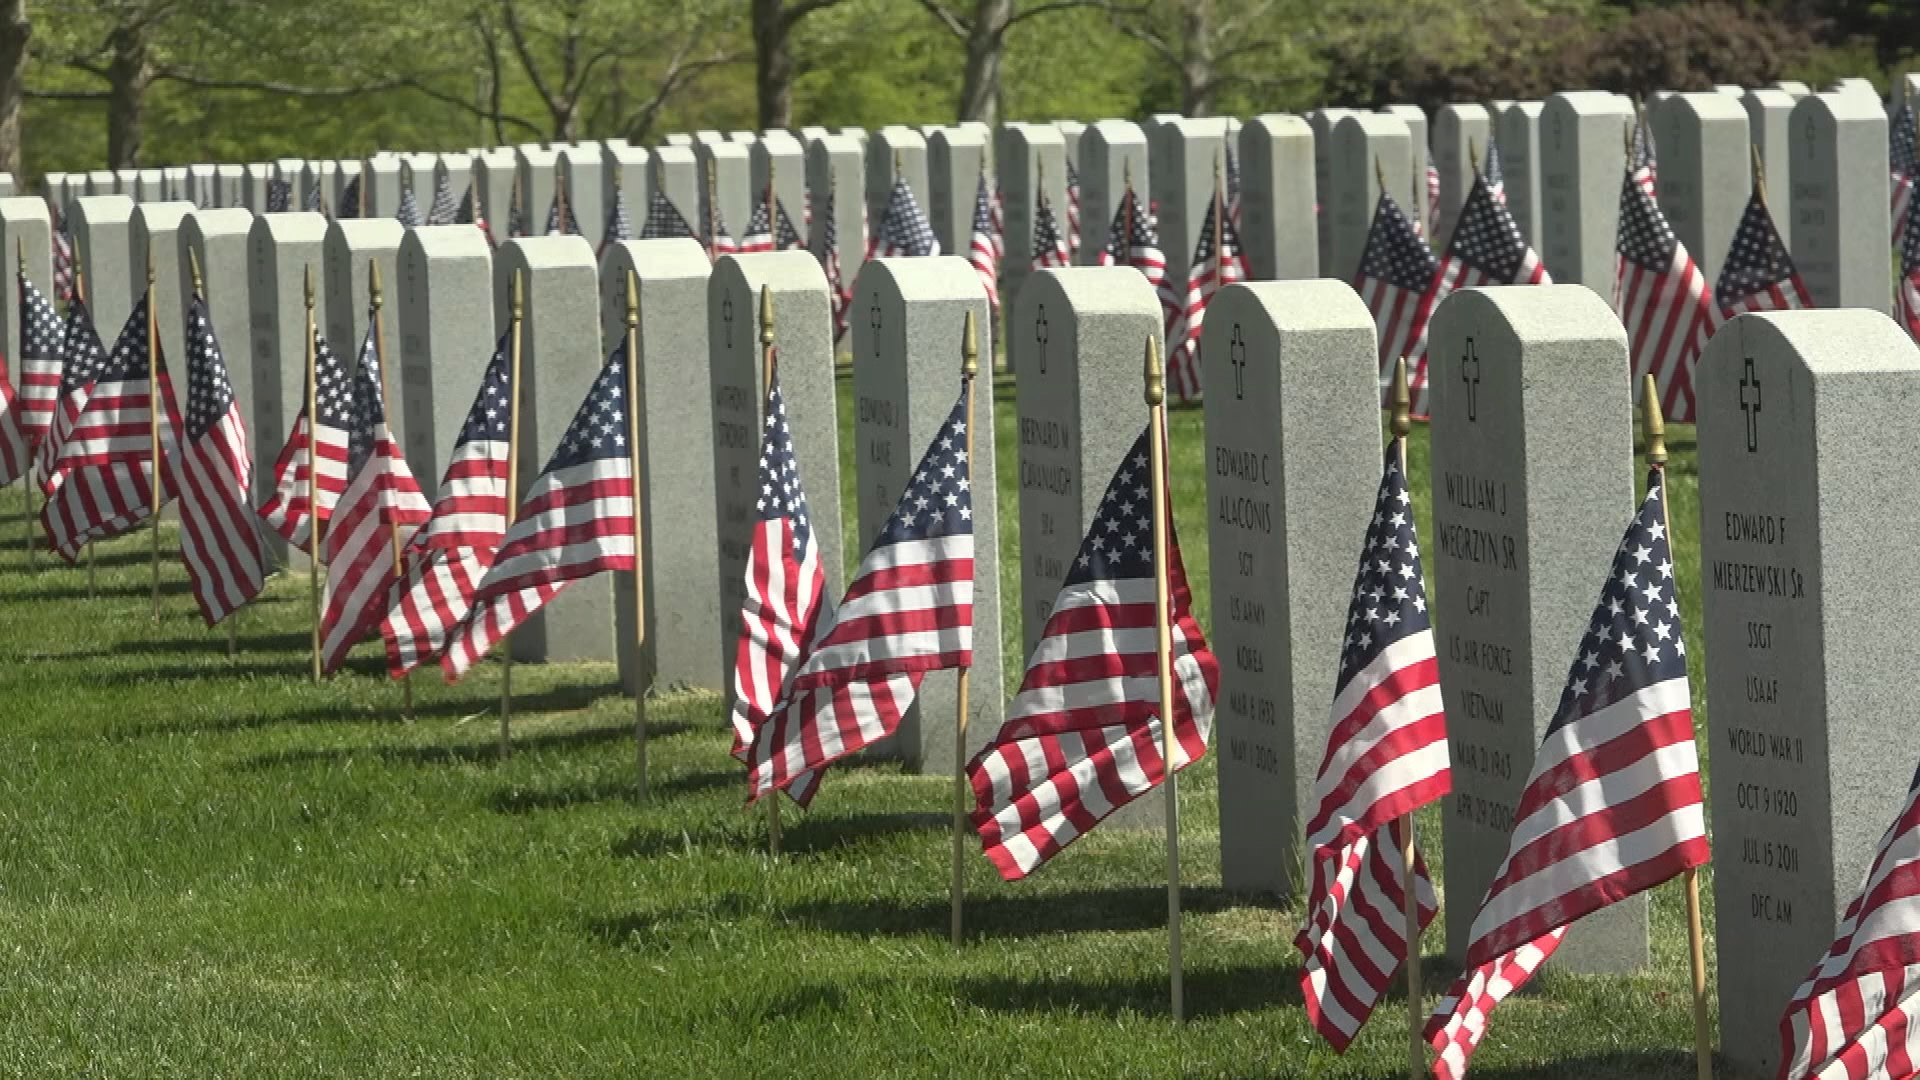 Visit the Veterans Memorial Cemetery in Agawam, where the coronavirus pandemic couldn't stop the annual tradition of planting flags on veterans' graves.